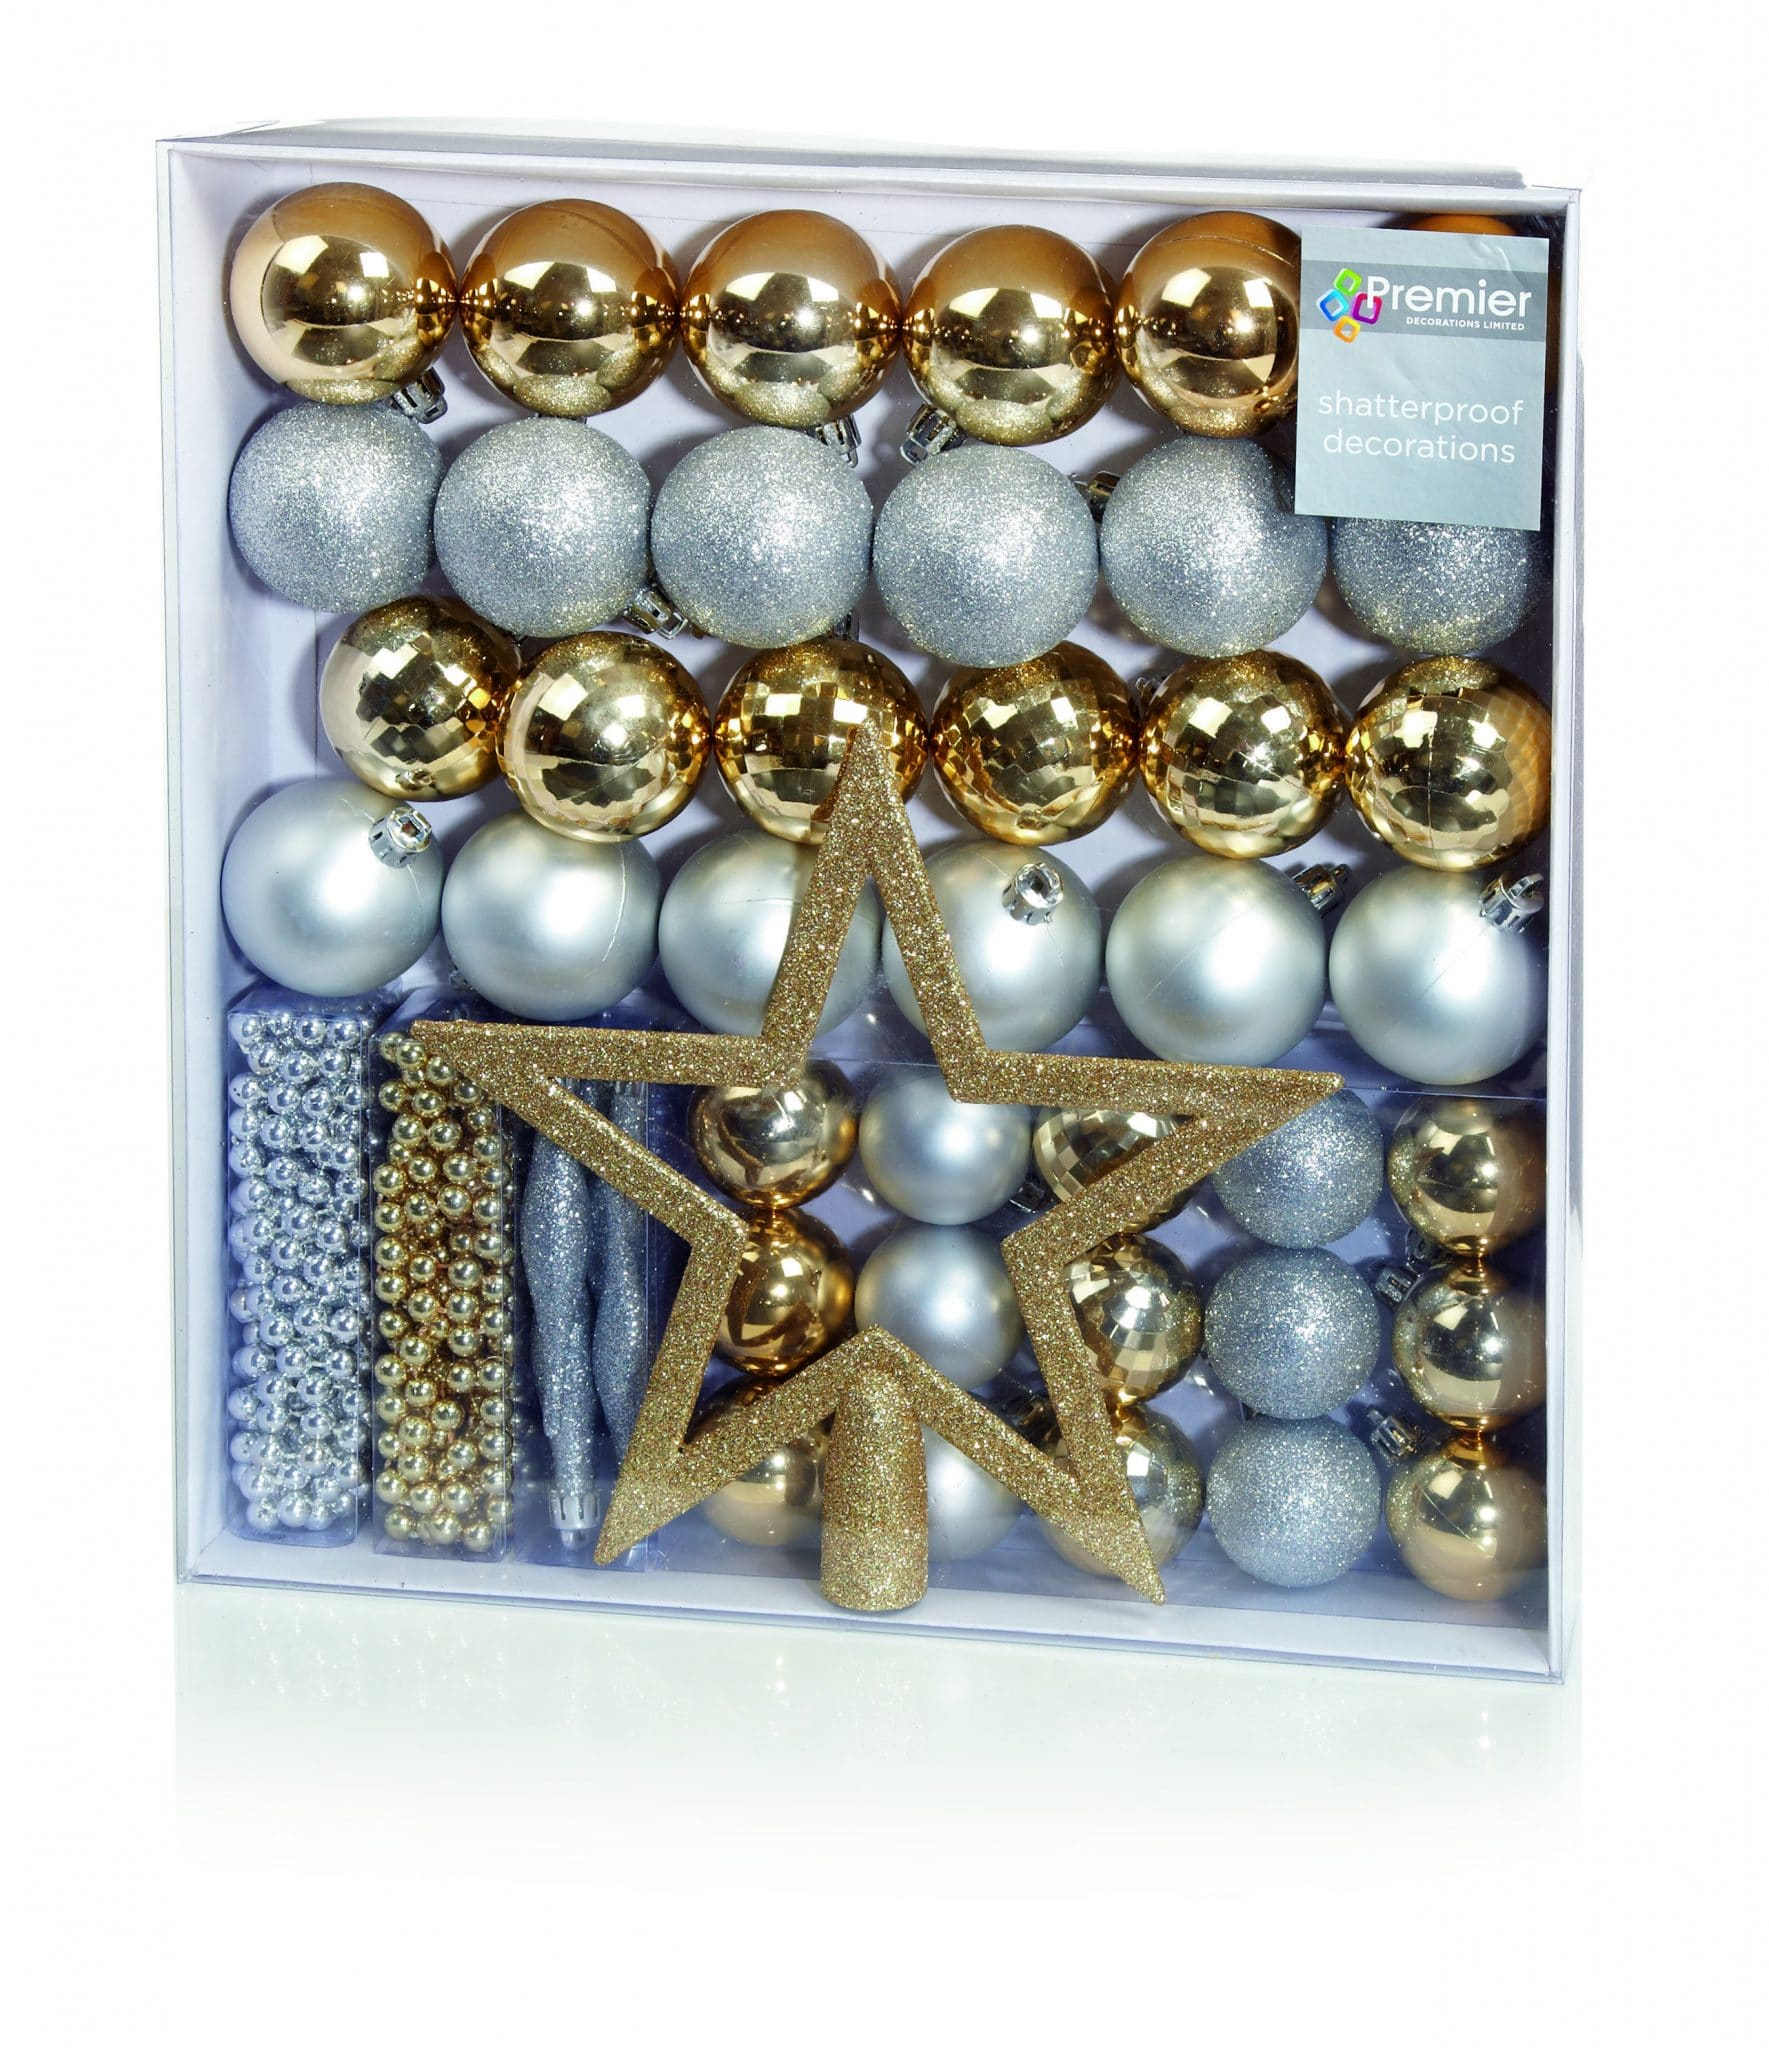 50 piece mixed tree decoration set gold silver send me a christmas tree